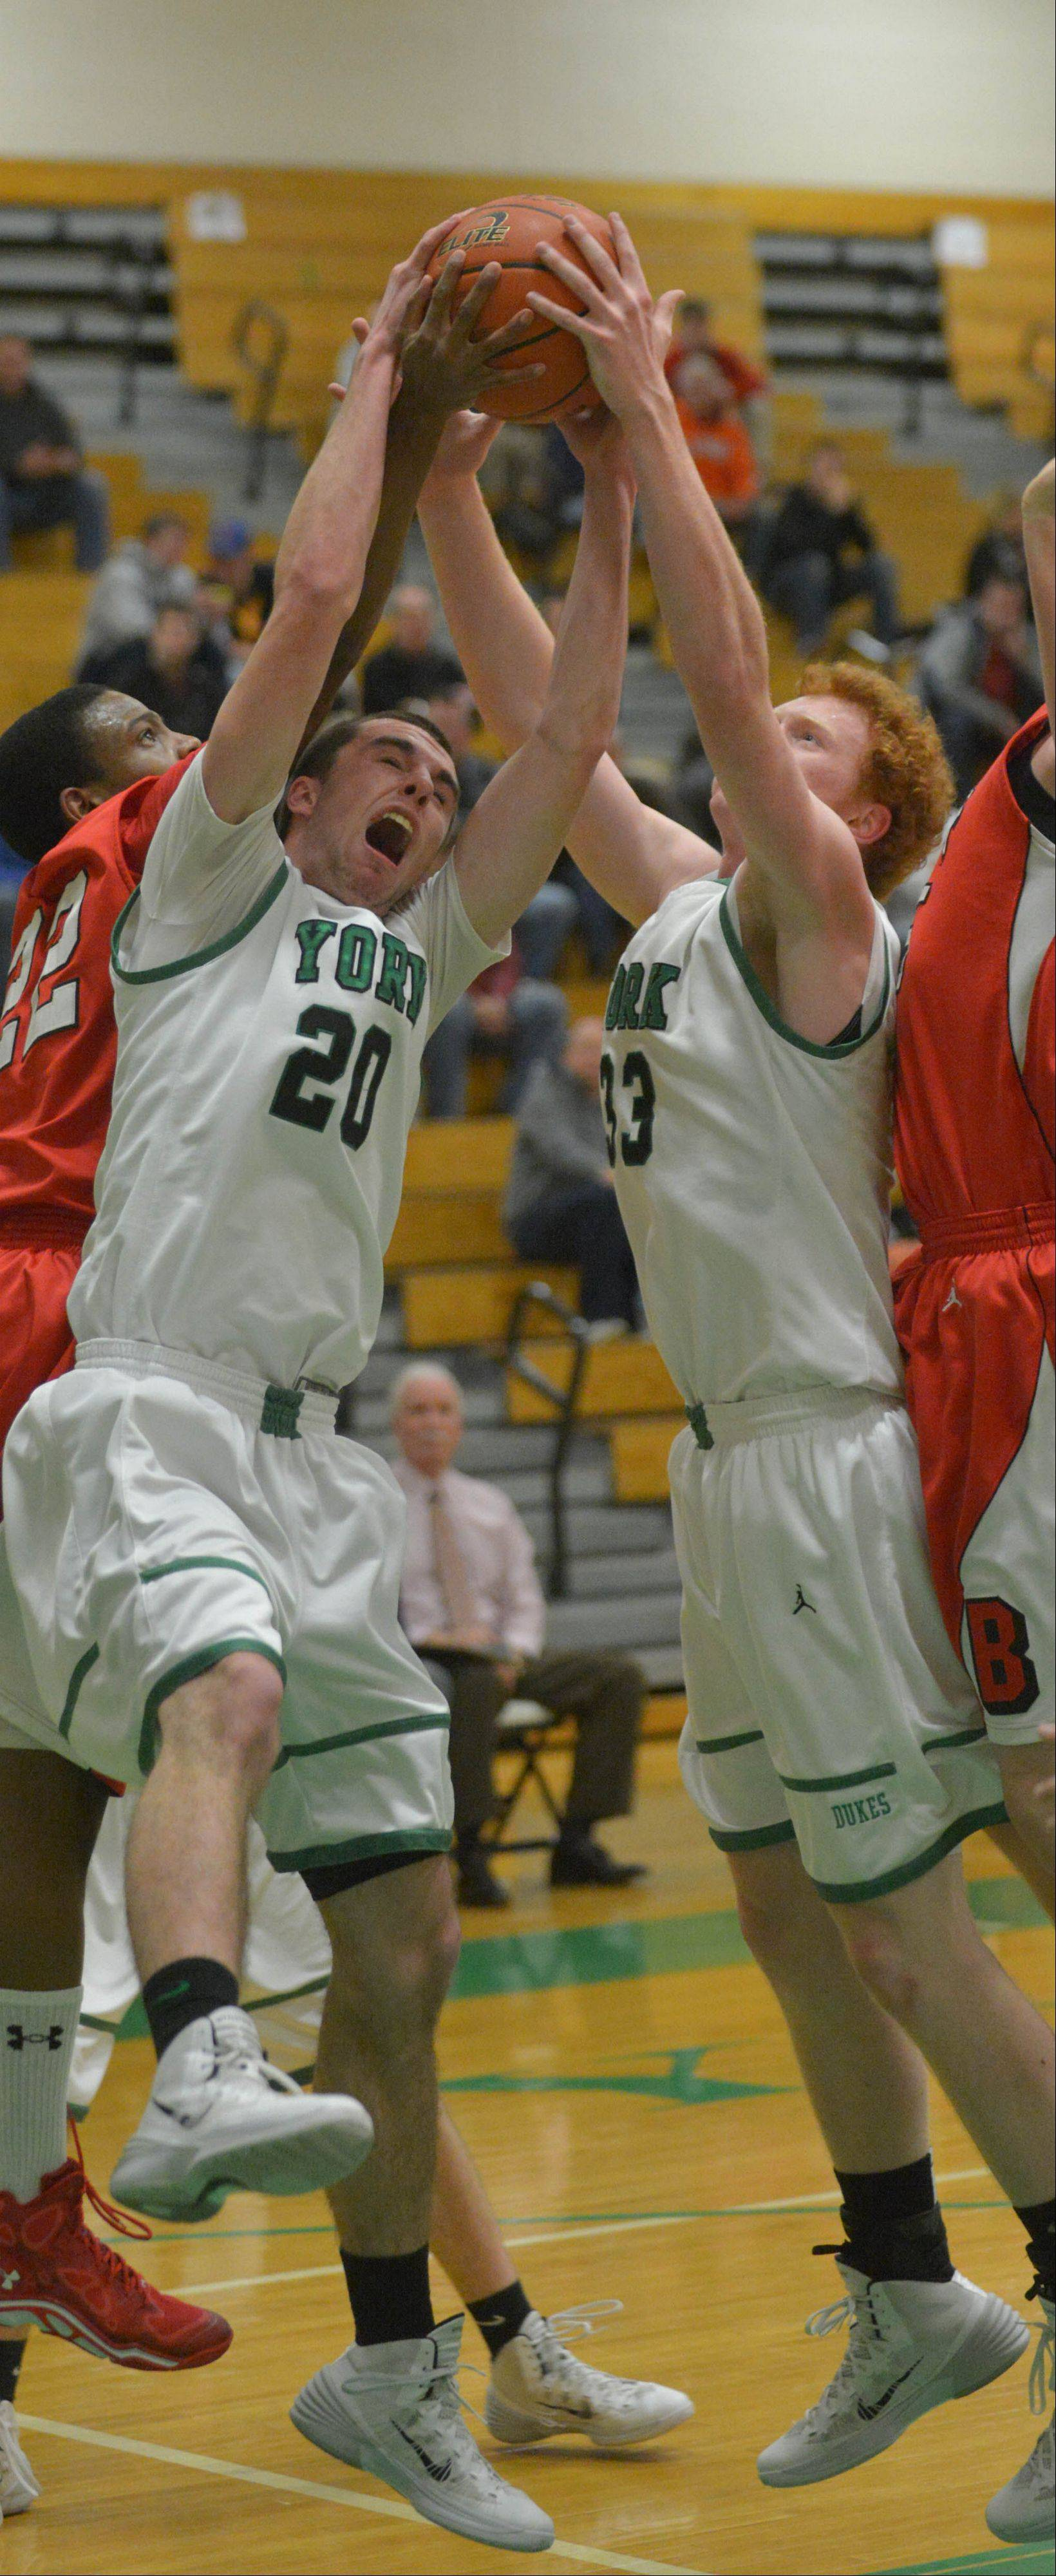 Charlie Rose and Frank Toohey of York pull down a rebound.